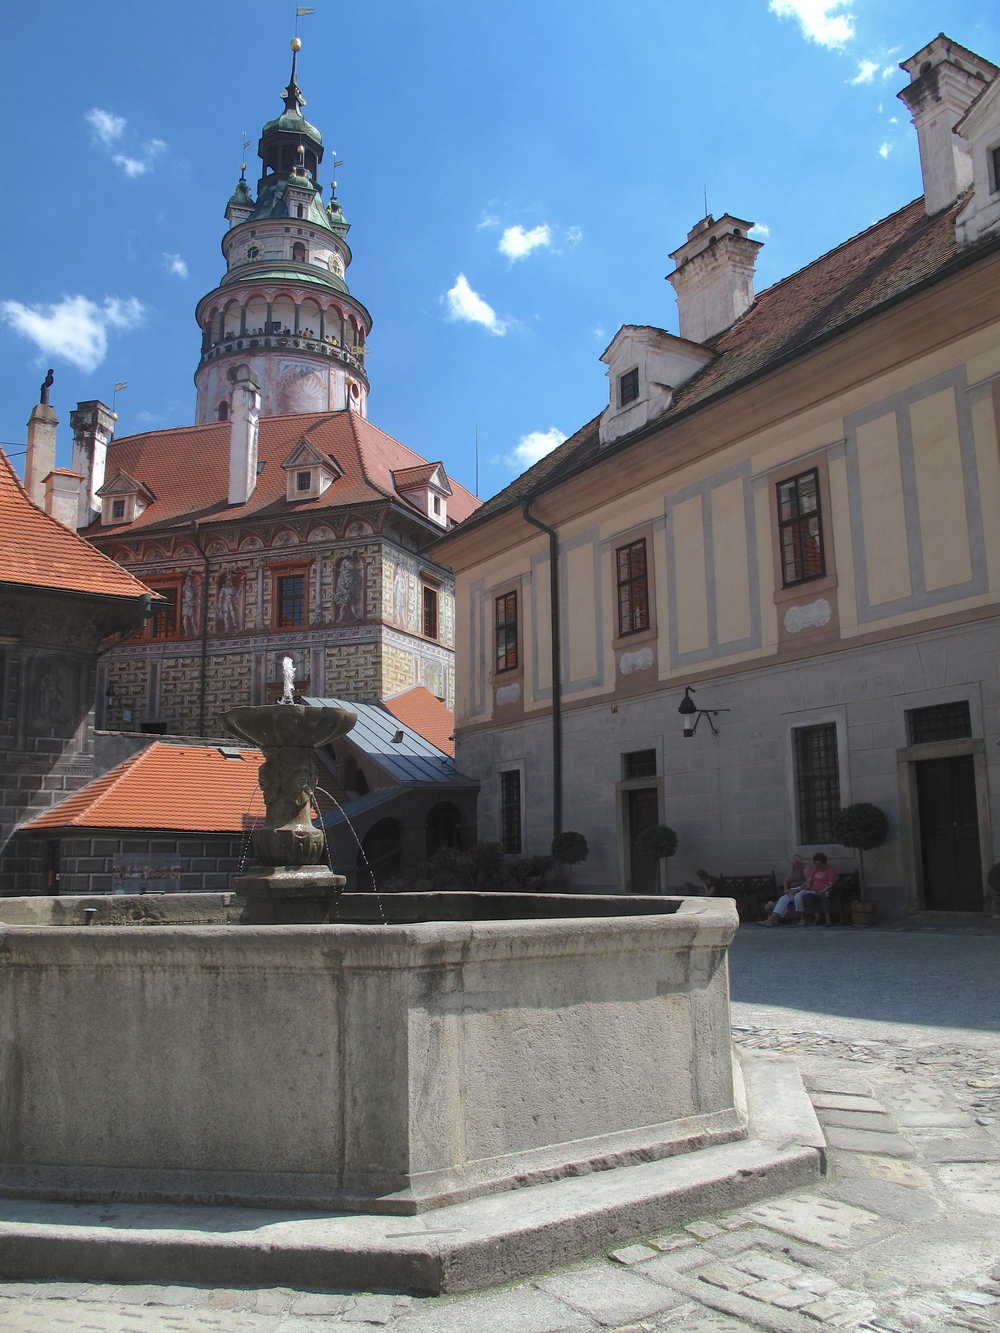 Cesky Krumlov castle square and tower - painted in many pastel colours.